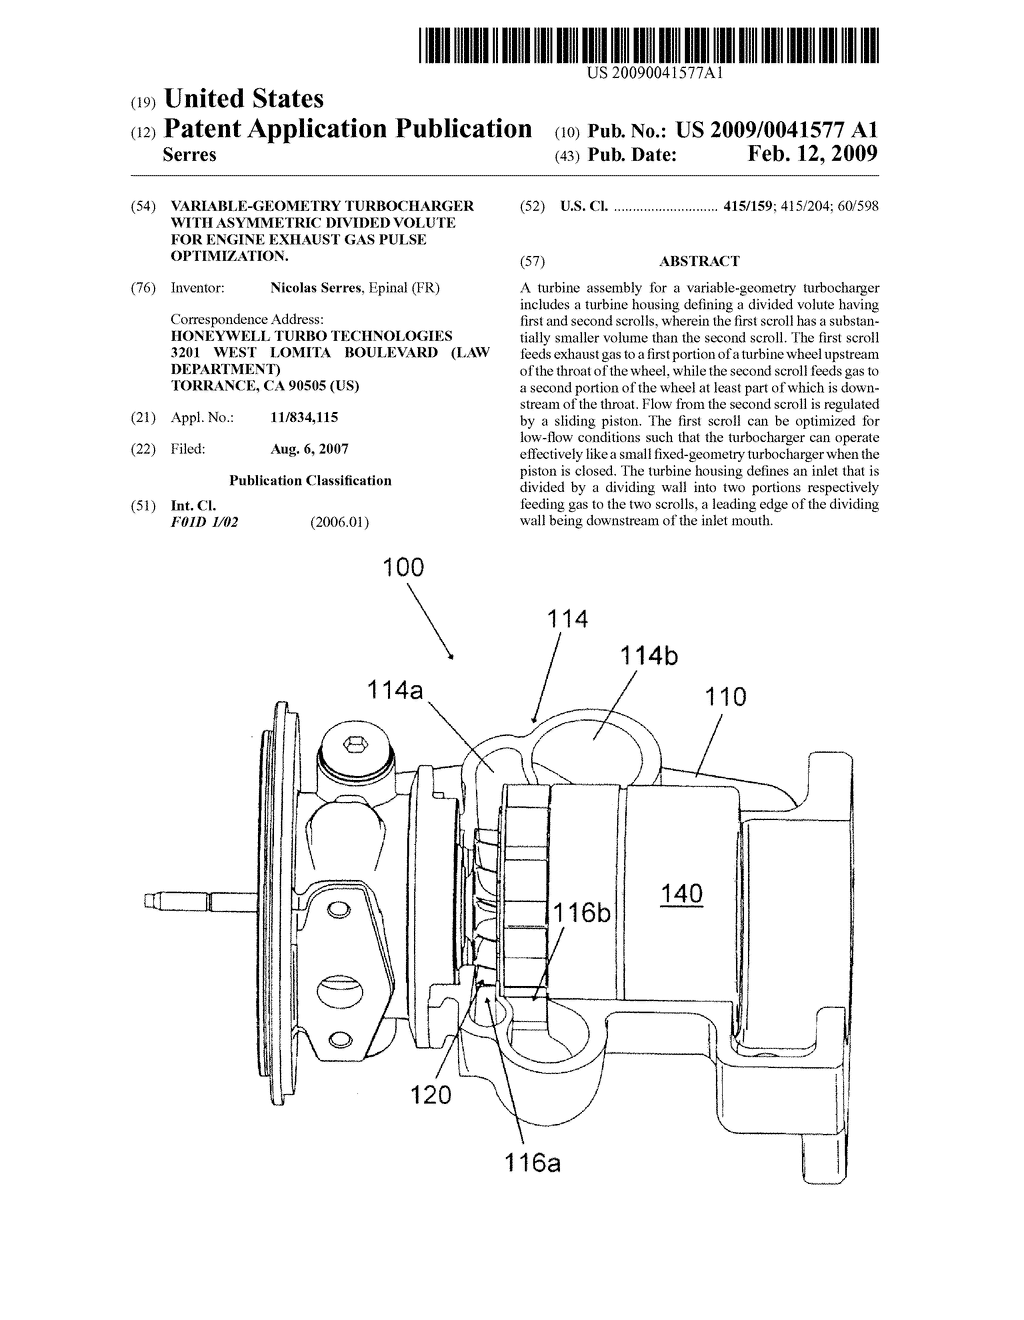 Variable Geometry Turbocharger With Asymmetric Divided Volute For Diagram Engine Exhaust Gas Pulse Optimization Schematic And Image 01